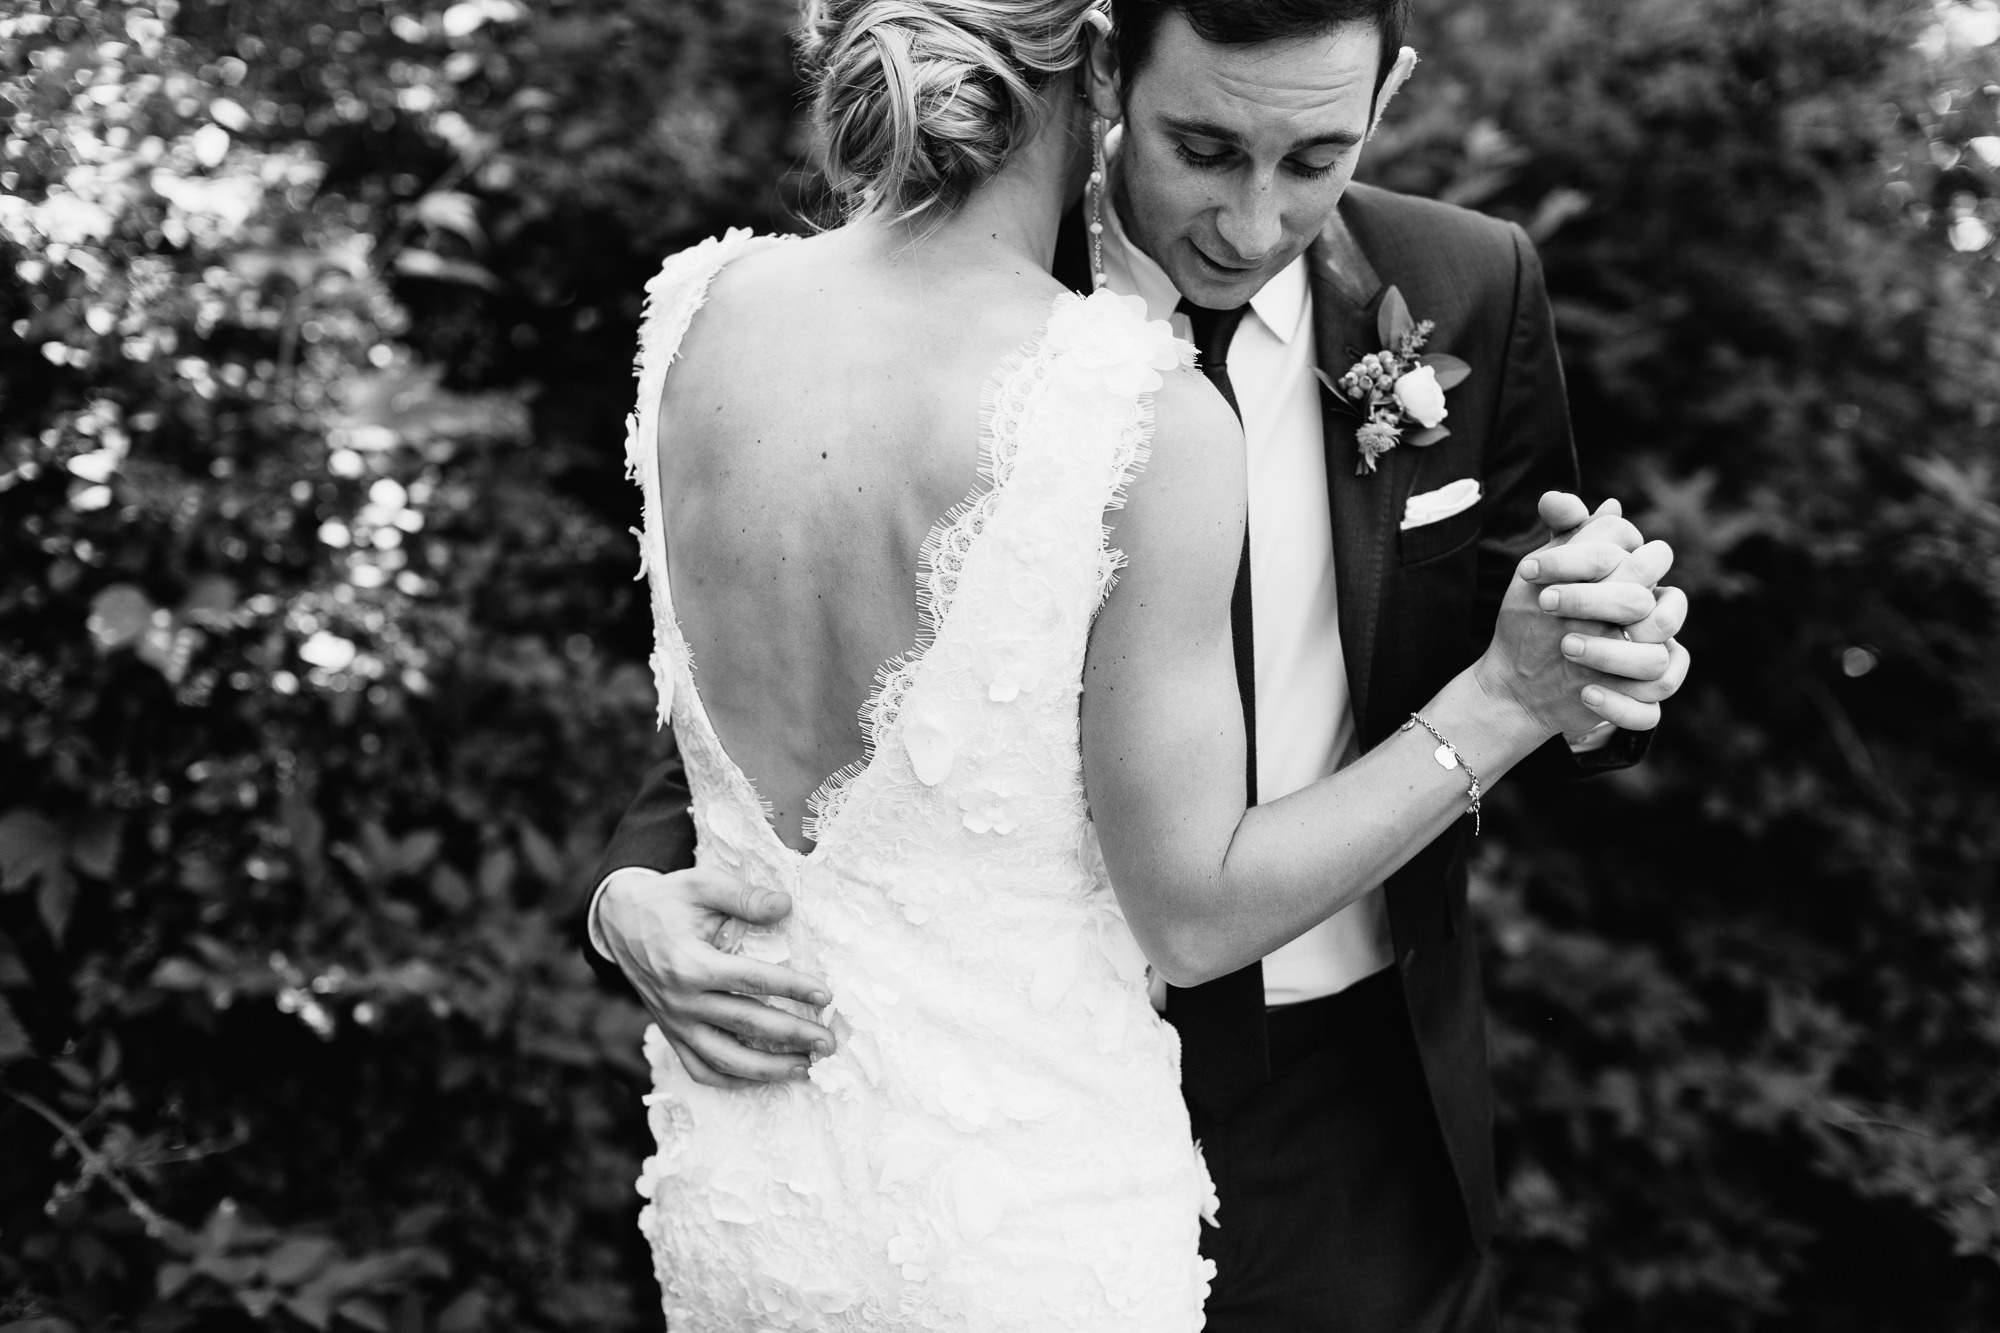 connecticut-summer-lake-wedding-emily-kirke-photography-upstyle (54 of 181).jpg